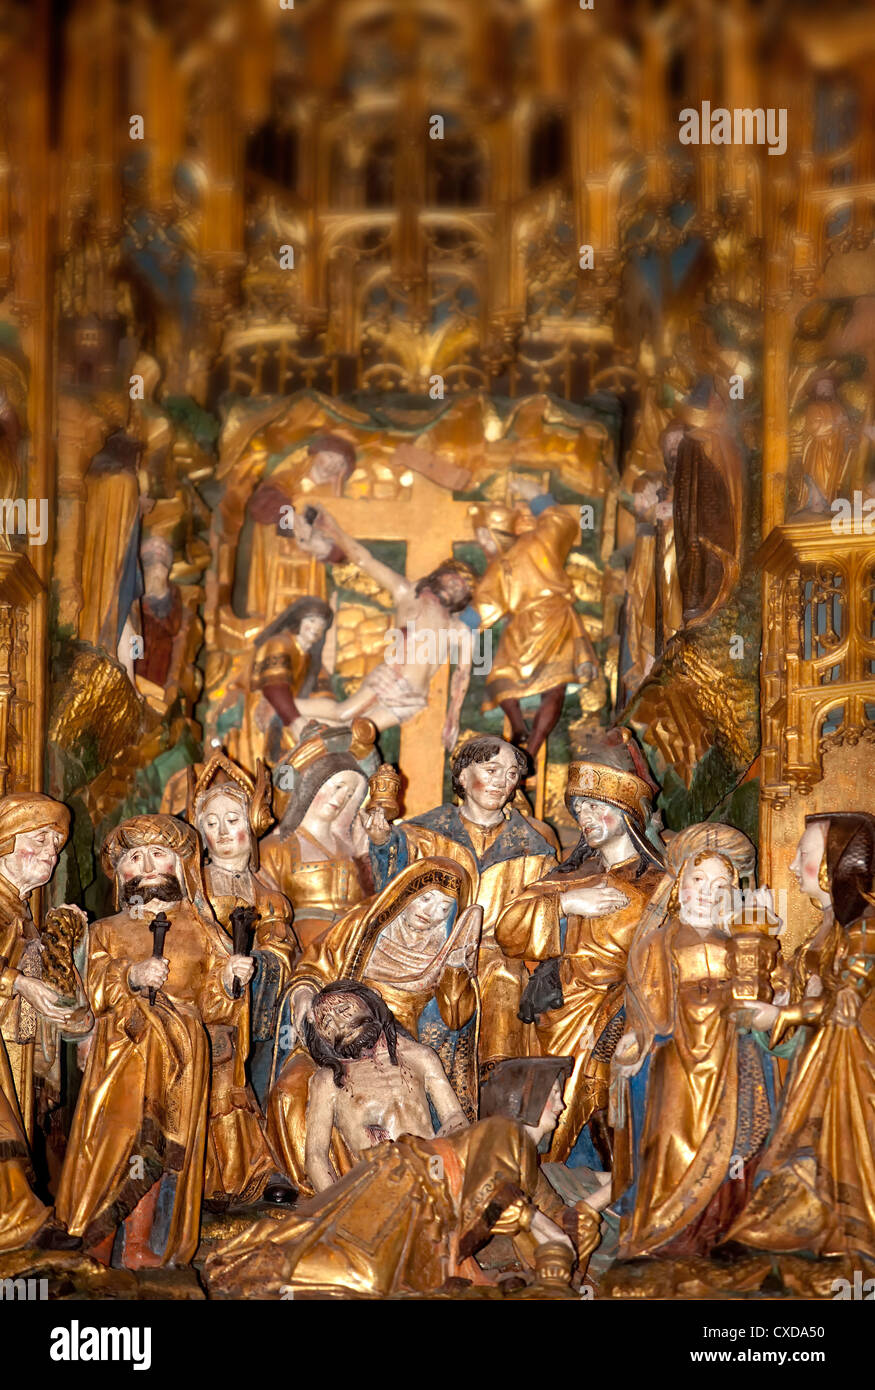 Agilolphus altar, detail of the biblical crucifixion scene, Koelner Dom, Cologne Cathedral, Germany, Europe - Stock Image